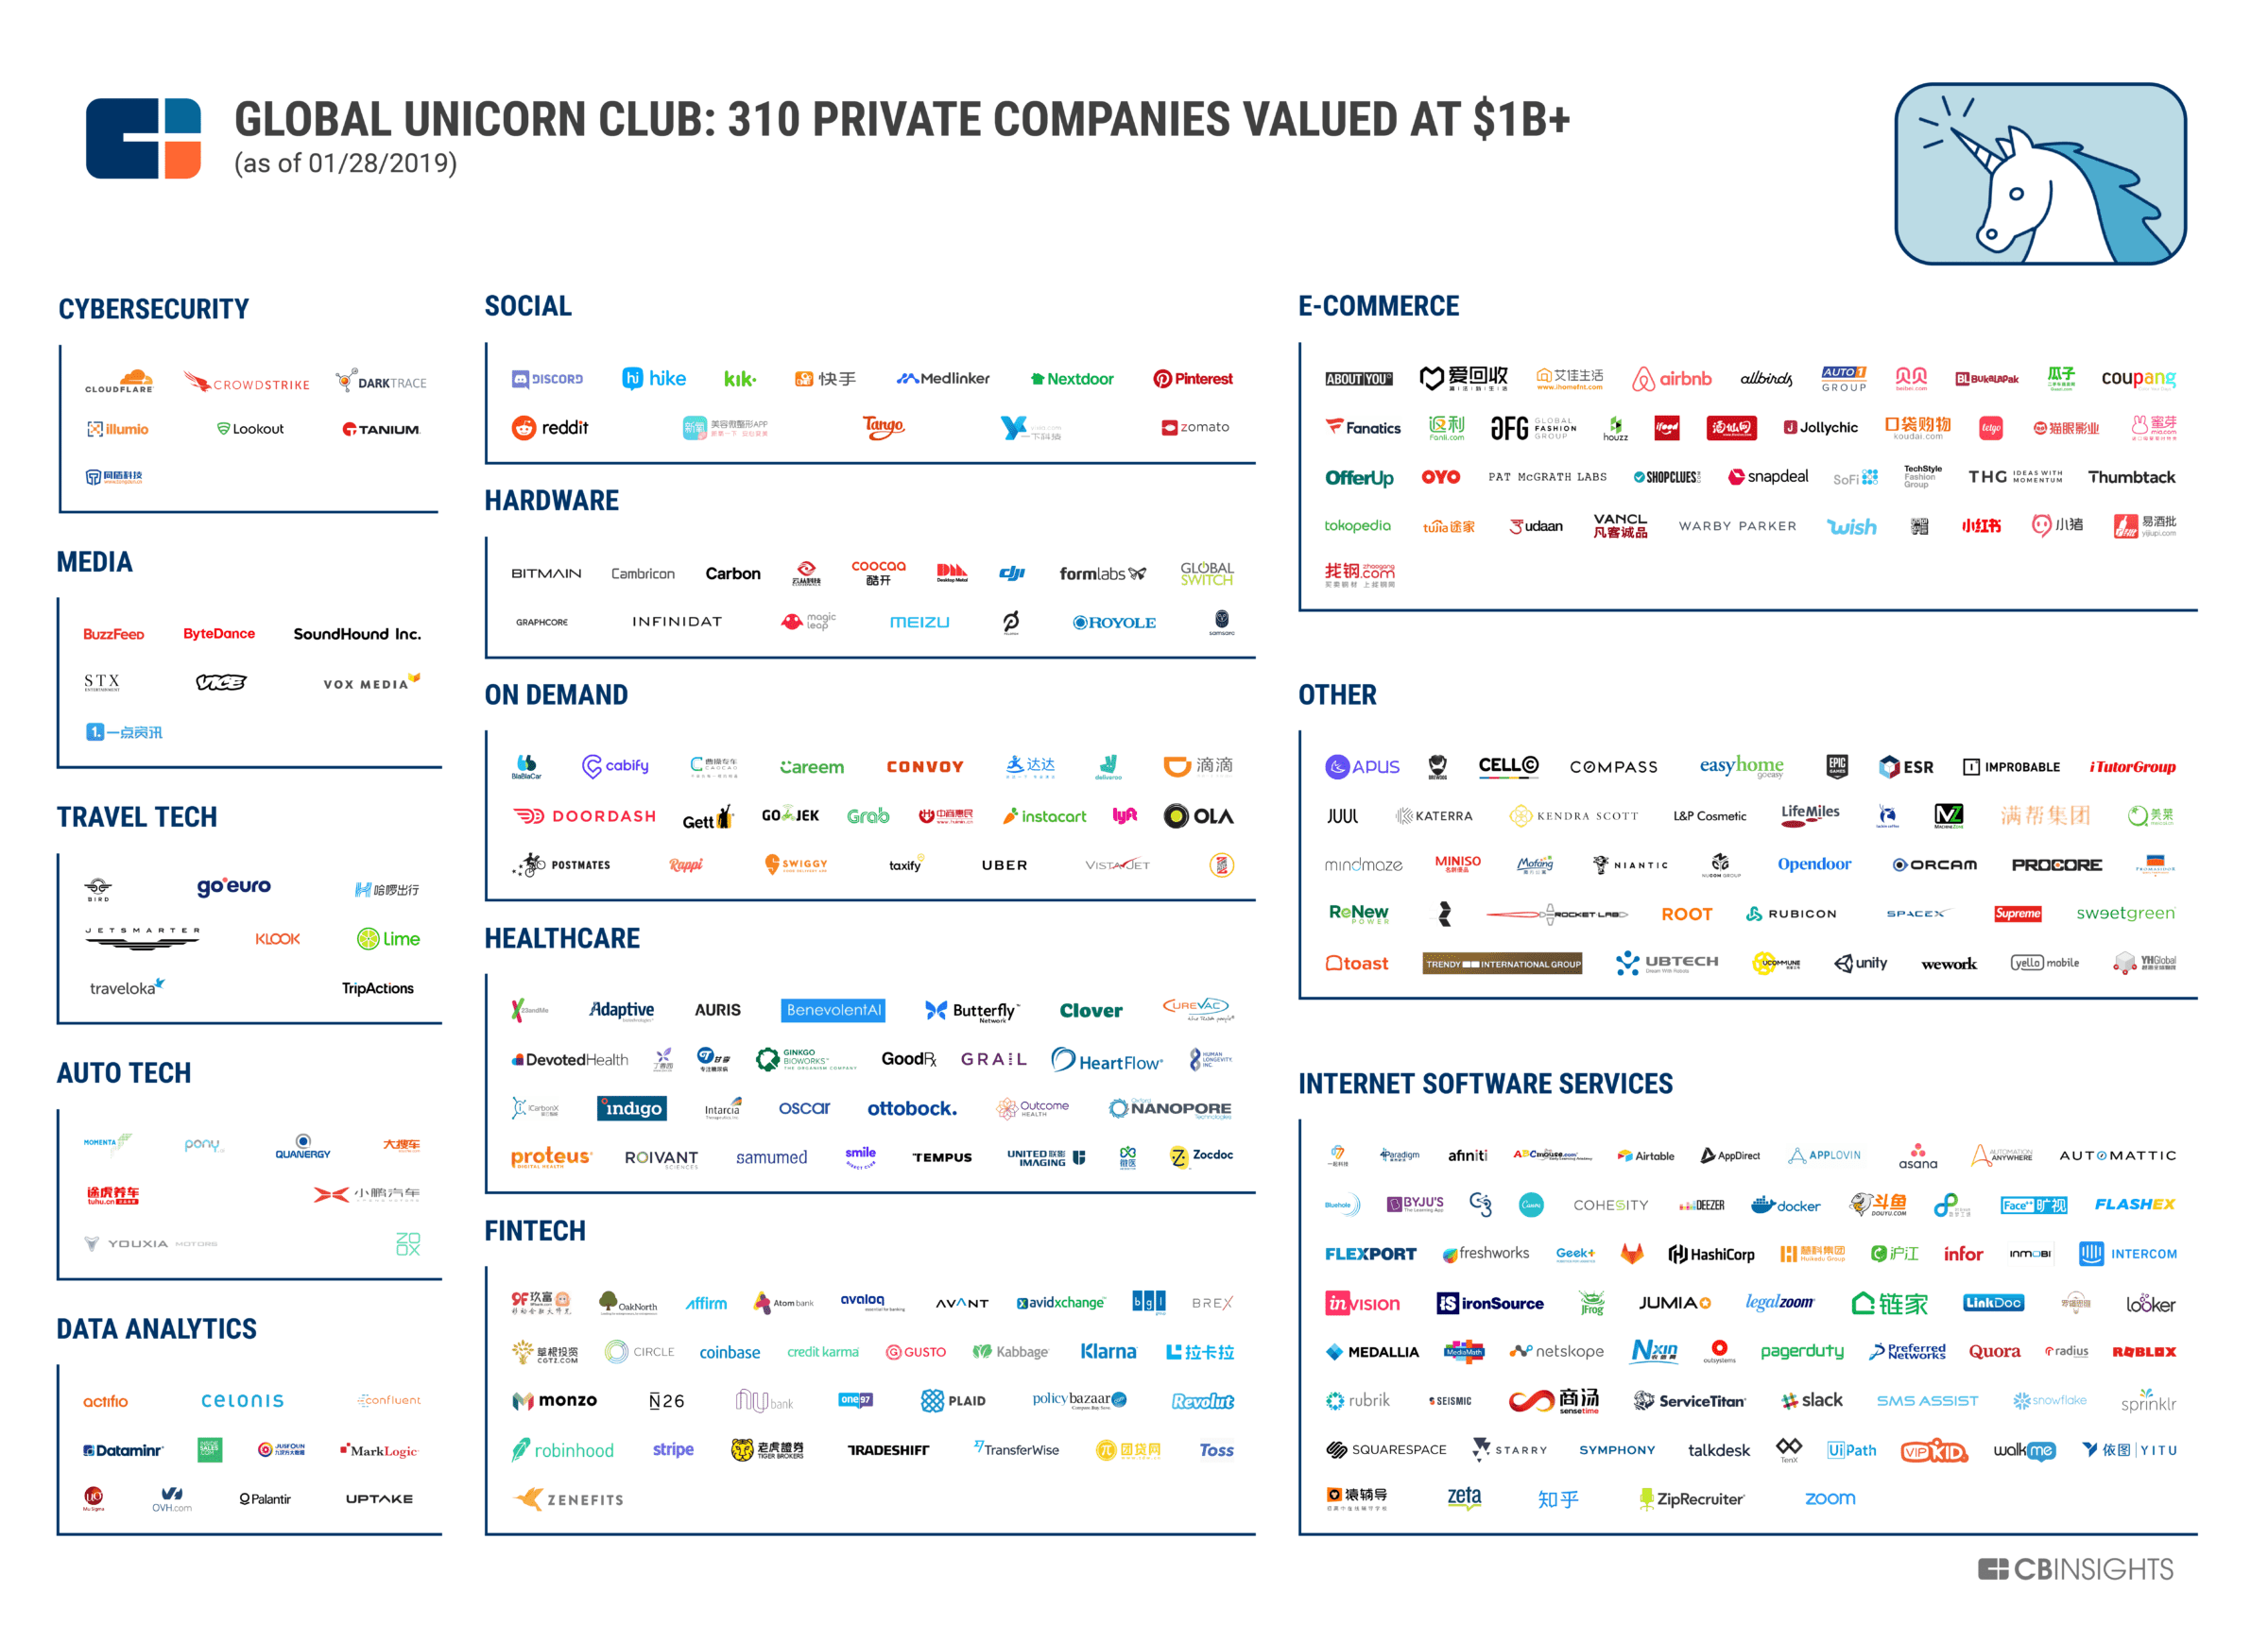 by CBInsights There are 310 private companies around the